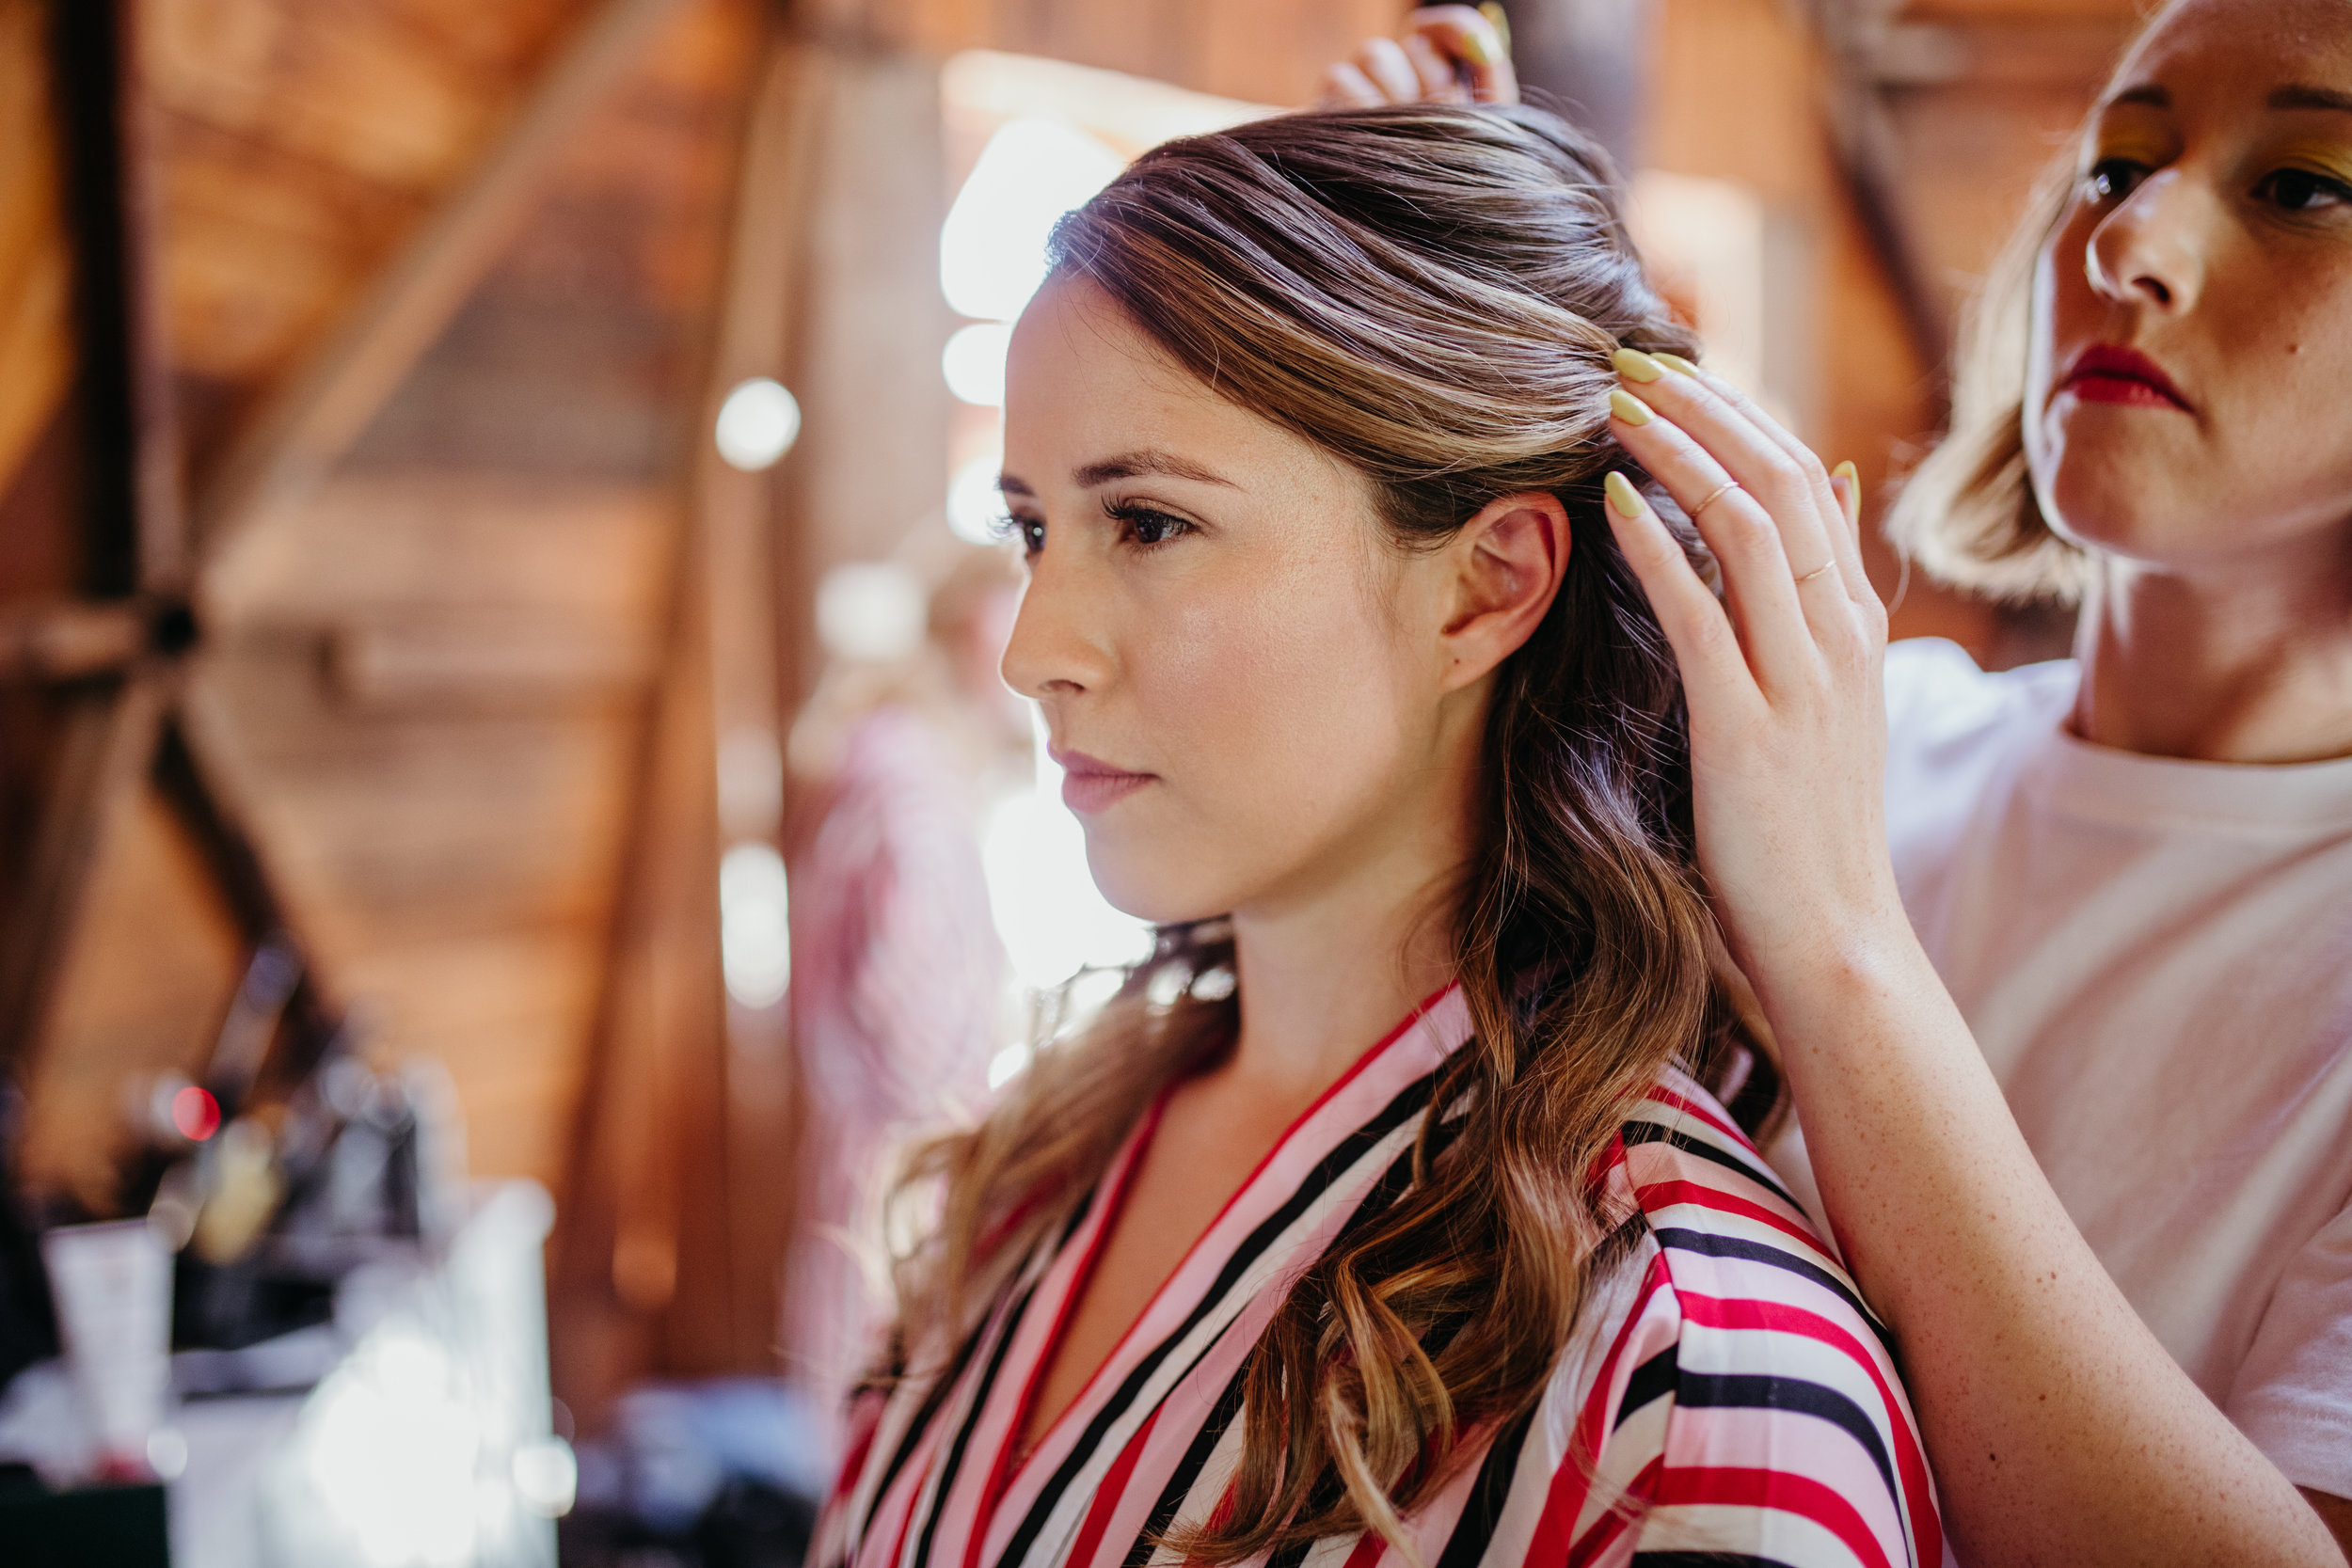 Aly_Oz_Farm_San_Francisco_Mendocino_Wedding_D+A_Bridal_hair_and_makeup_8.jpg